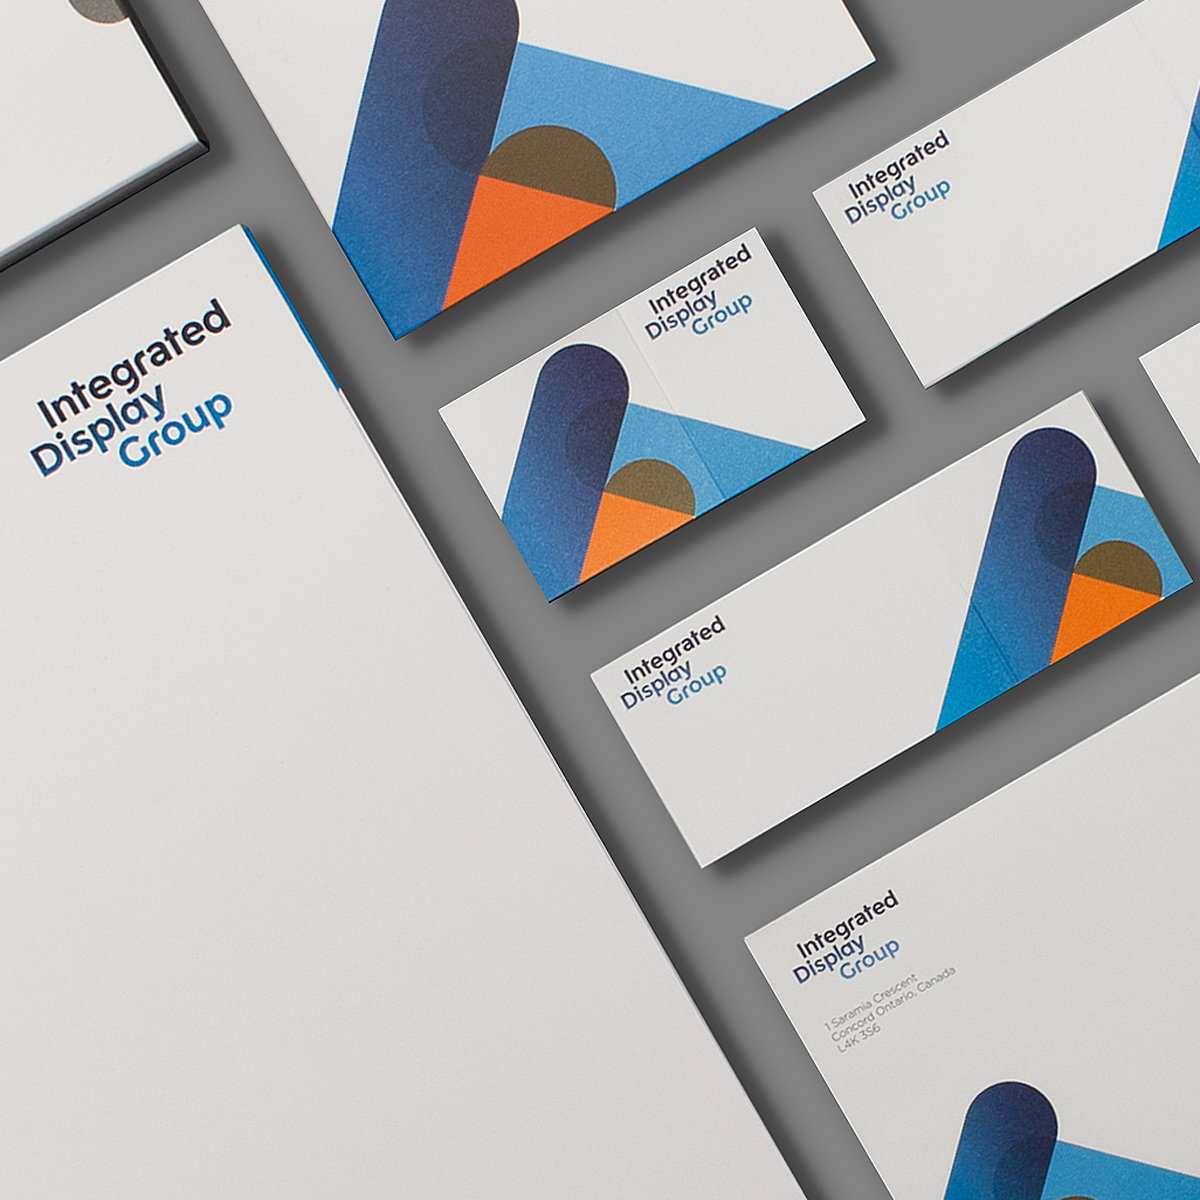 typotherapy Creates New Identity for Integrated Display Group